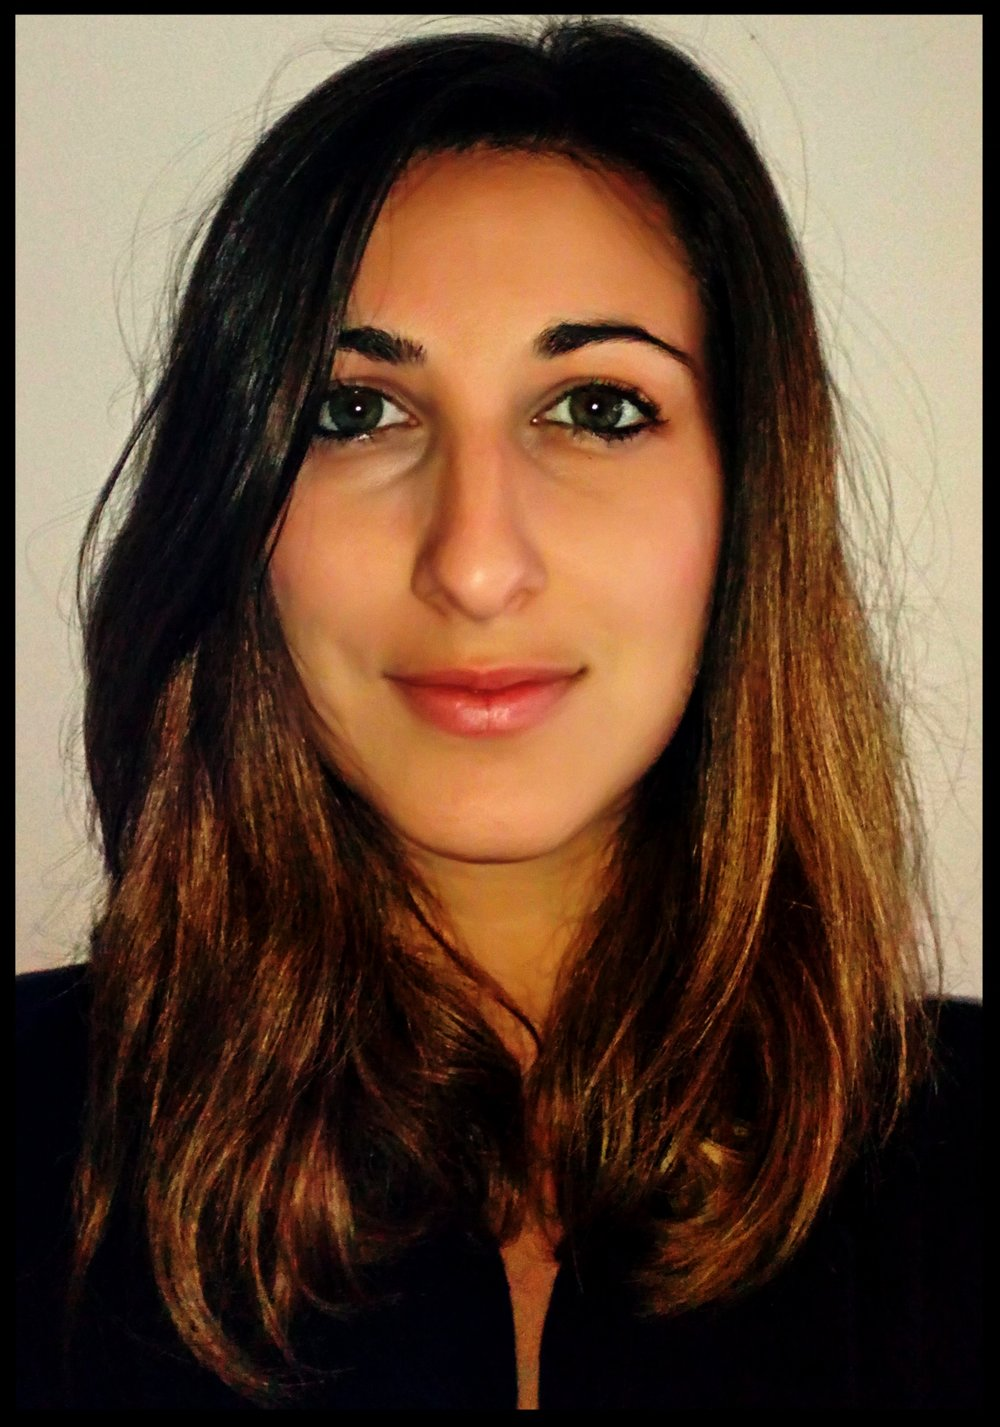 """Hello I am Nora! - I am native Italian, grew up in Germany and speak fluent Spanish from living and working in Spain. I am a patient, reliable person.I perfectly understand the struggles of learning a foreign language. This is why I created """"learning with Nora"""" as I want to share my passion for languages and teaching anybody who wants to learn Spanish, German, Italian or English in a friendly and easy way.I have been teaching Spanish, German and Italian since I moved to England in December 2017.I strongly believe that the most important things in learning a language are to enjoy it, to feel comfortable and to be motivated.It is a wonderful feeling to share my love for languages and cultures with a huge range of people. My clients are extremely diverse, from young children to retired adults and from complete beginners to advanced learners.Please don't hesitate to get in touch if you would like to have some more information about classes and prices.I look forward to supporting you a way throughout the learning journey."""